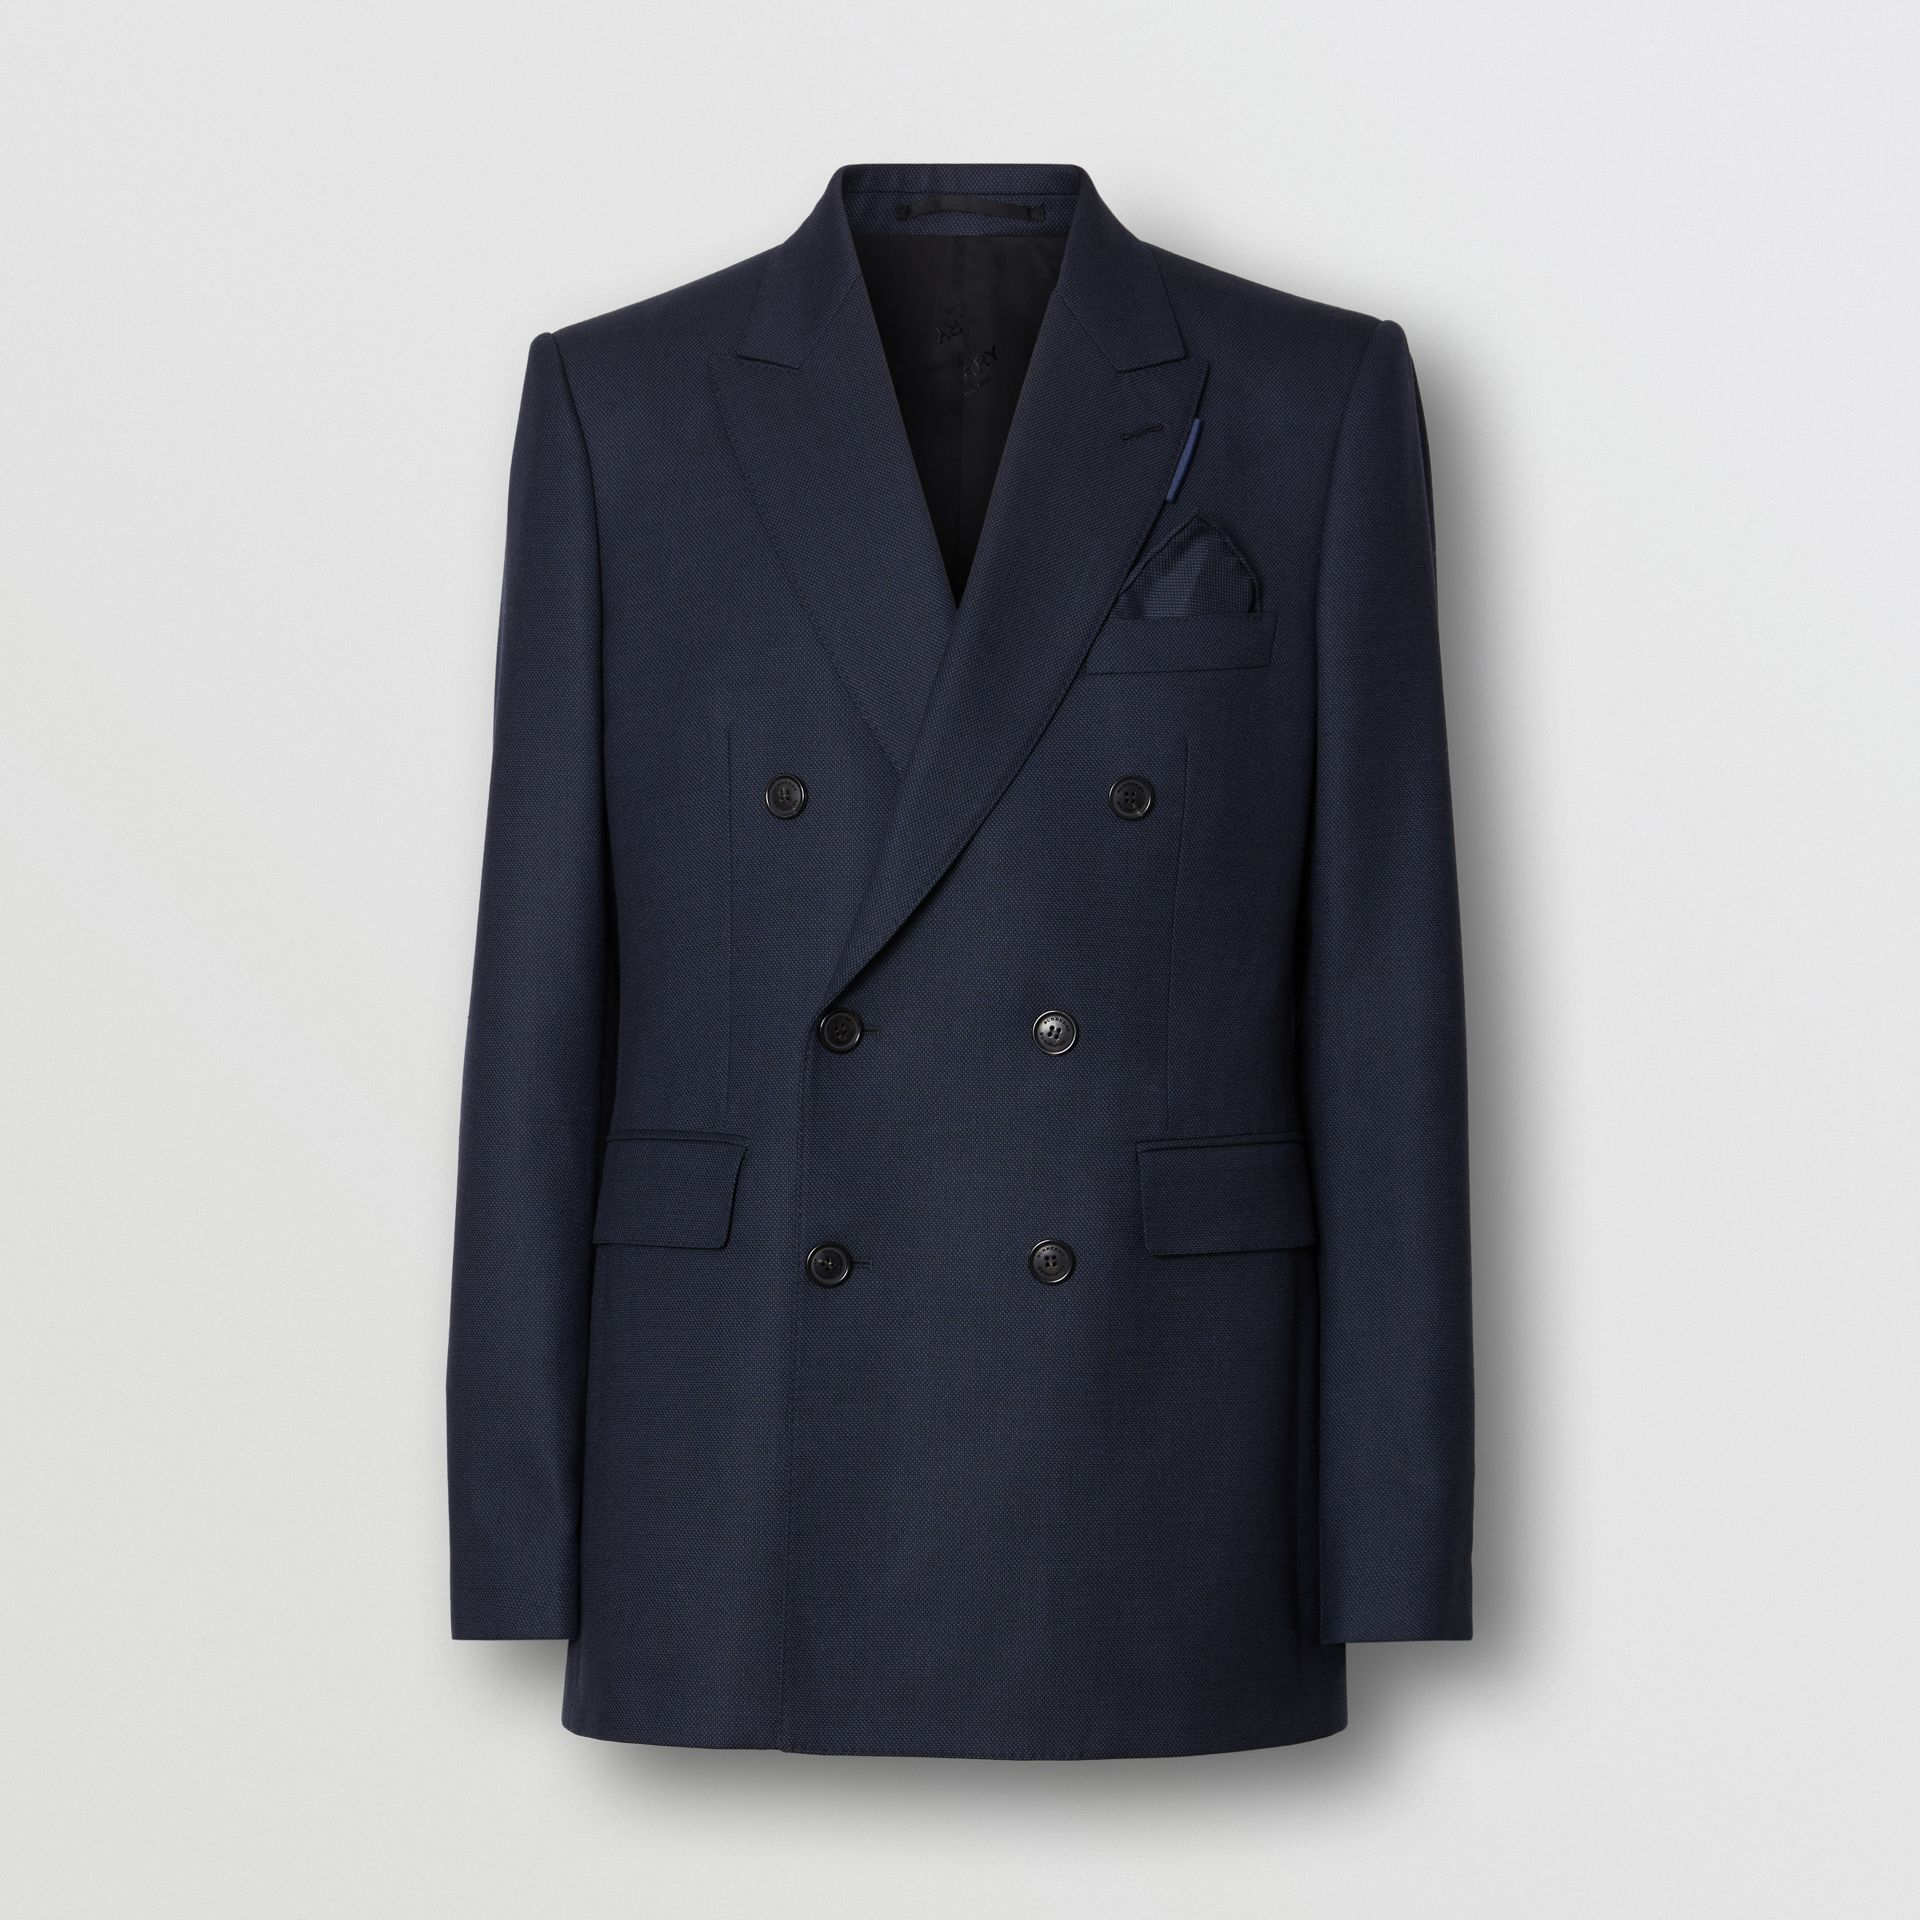 English Fit Birdseye Wool Cashmere Suit in Navy Blue | Burberry United Kingdom - gallery image 3